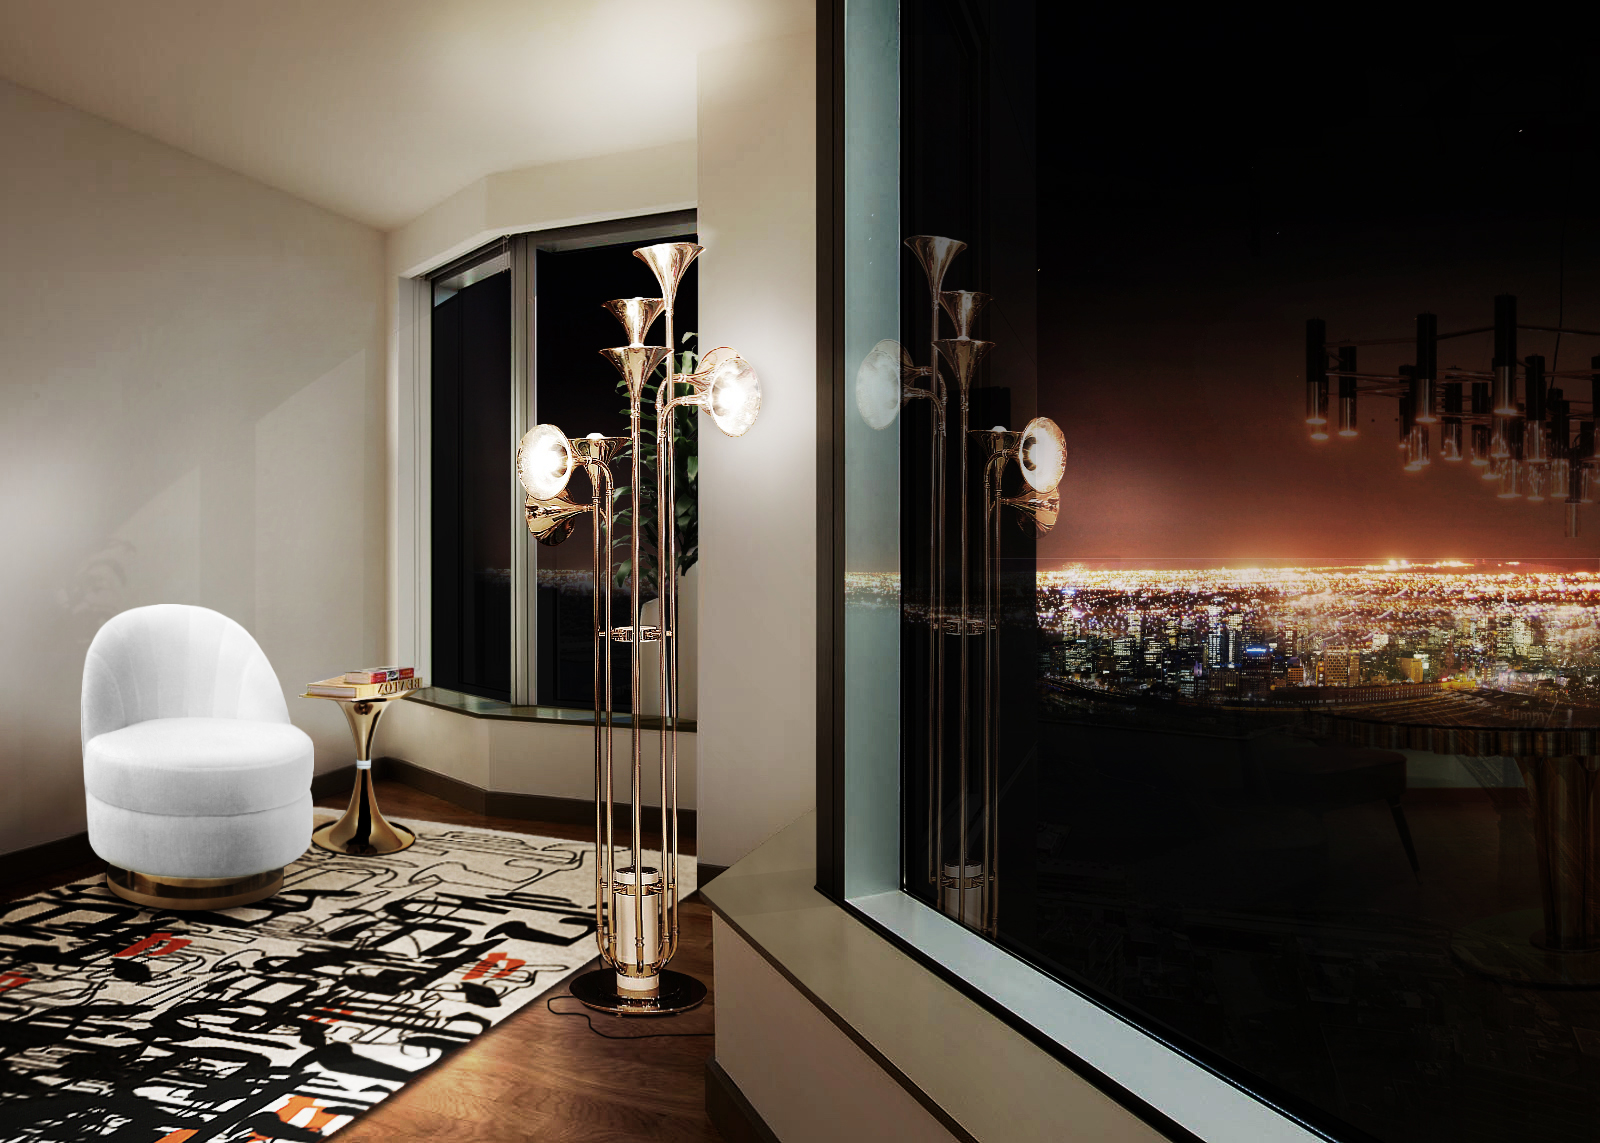 LIVING ROOM WITH CITY VIEW